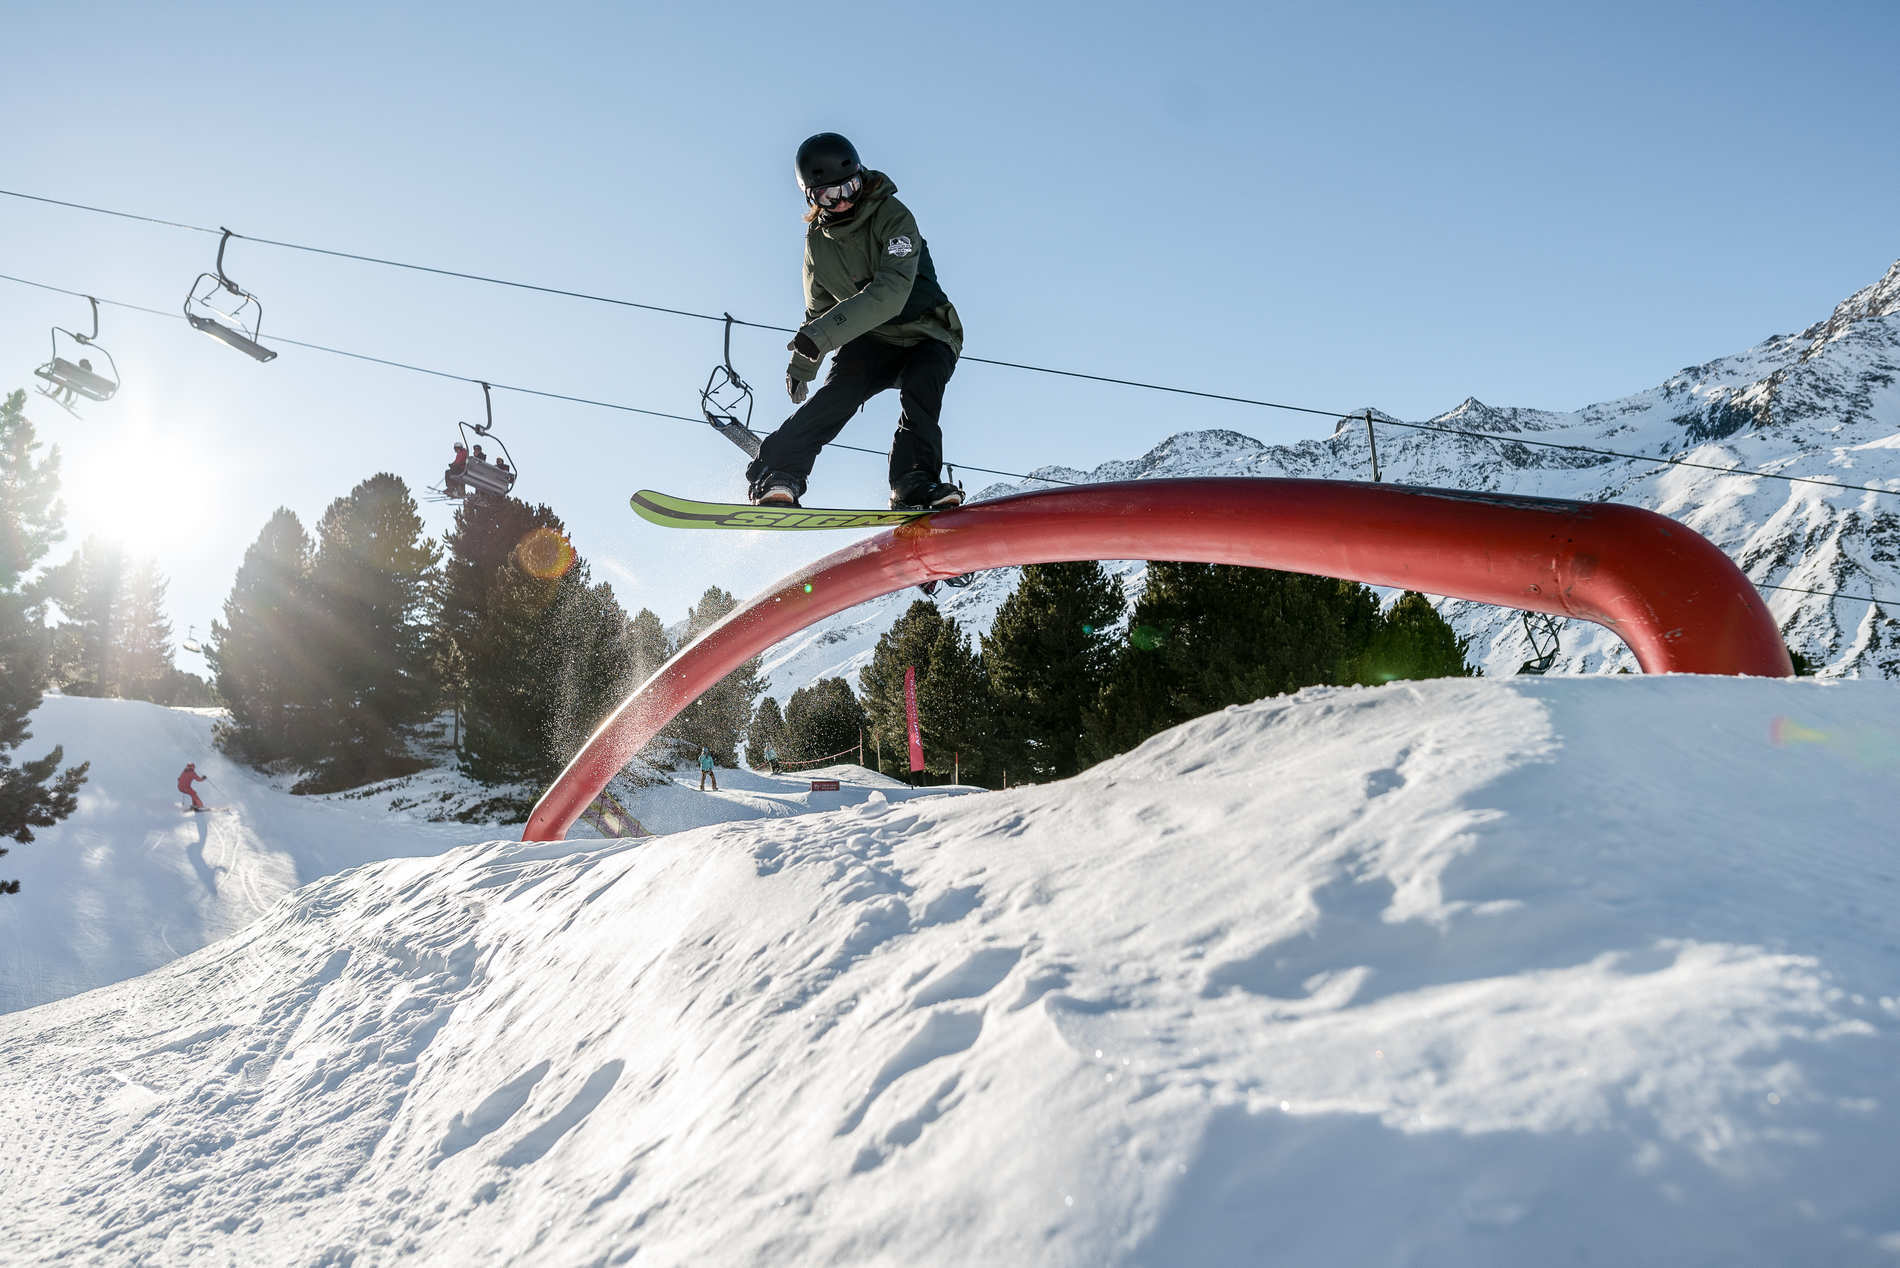 web obergurgl 29 01 2017 action sb naomi macfarlane christian riefenberg qparks 1